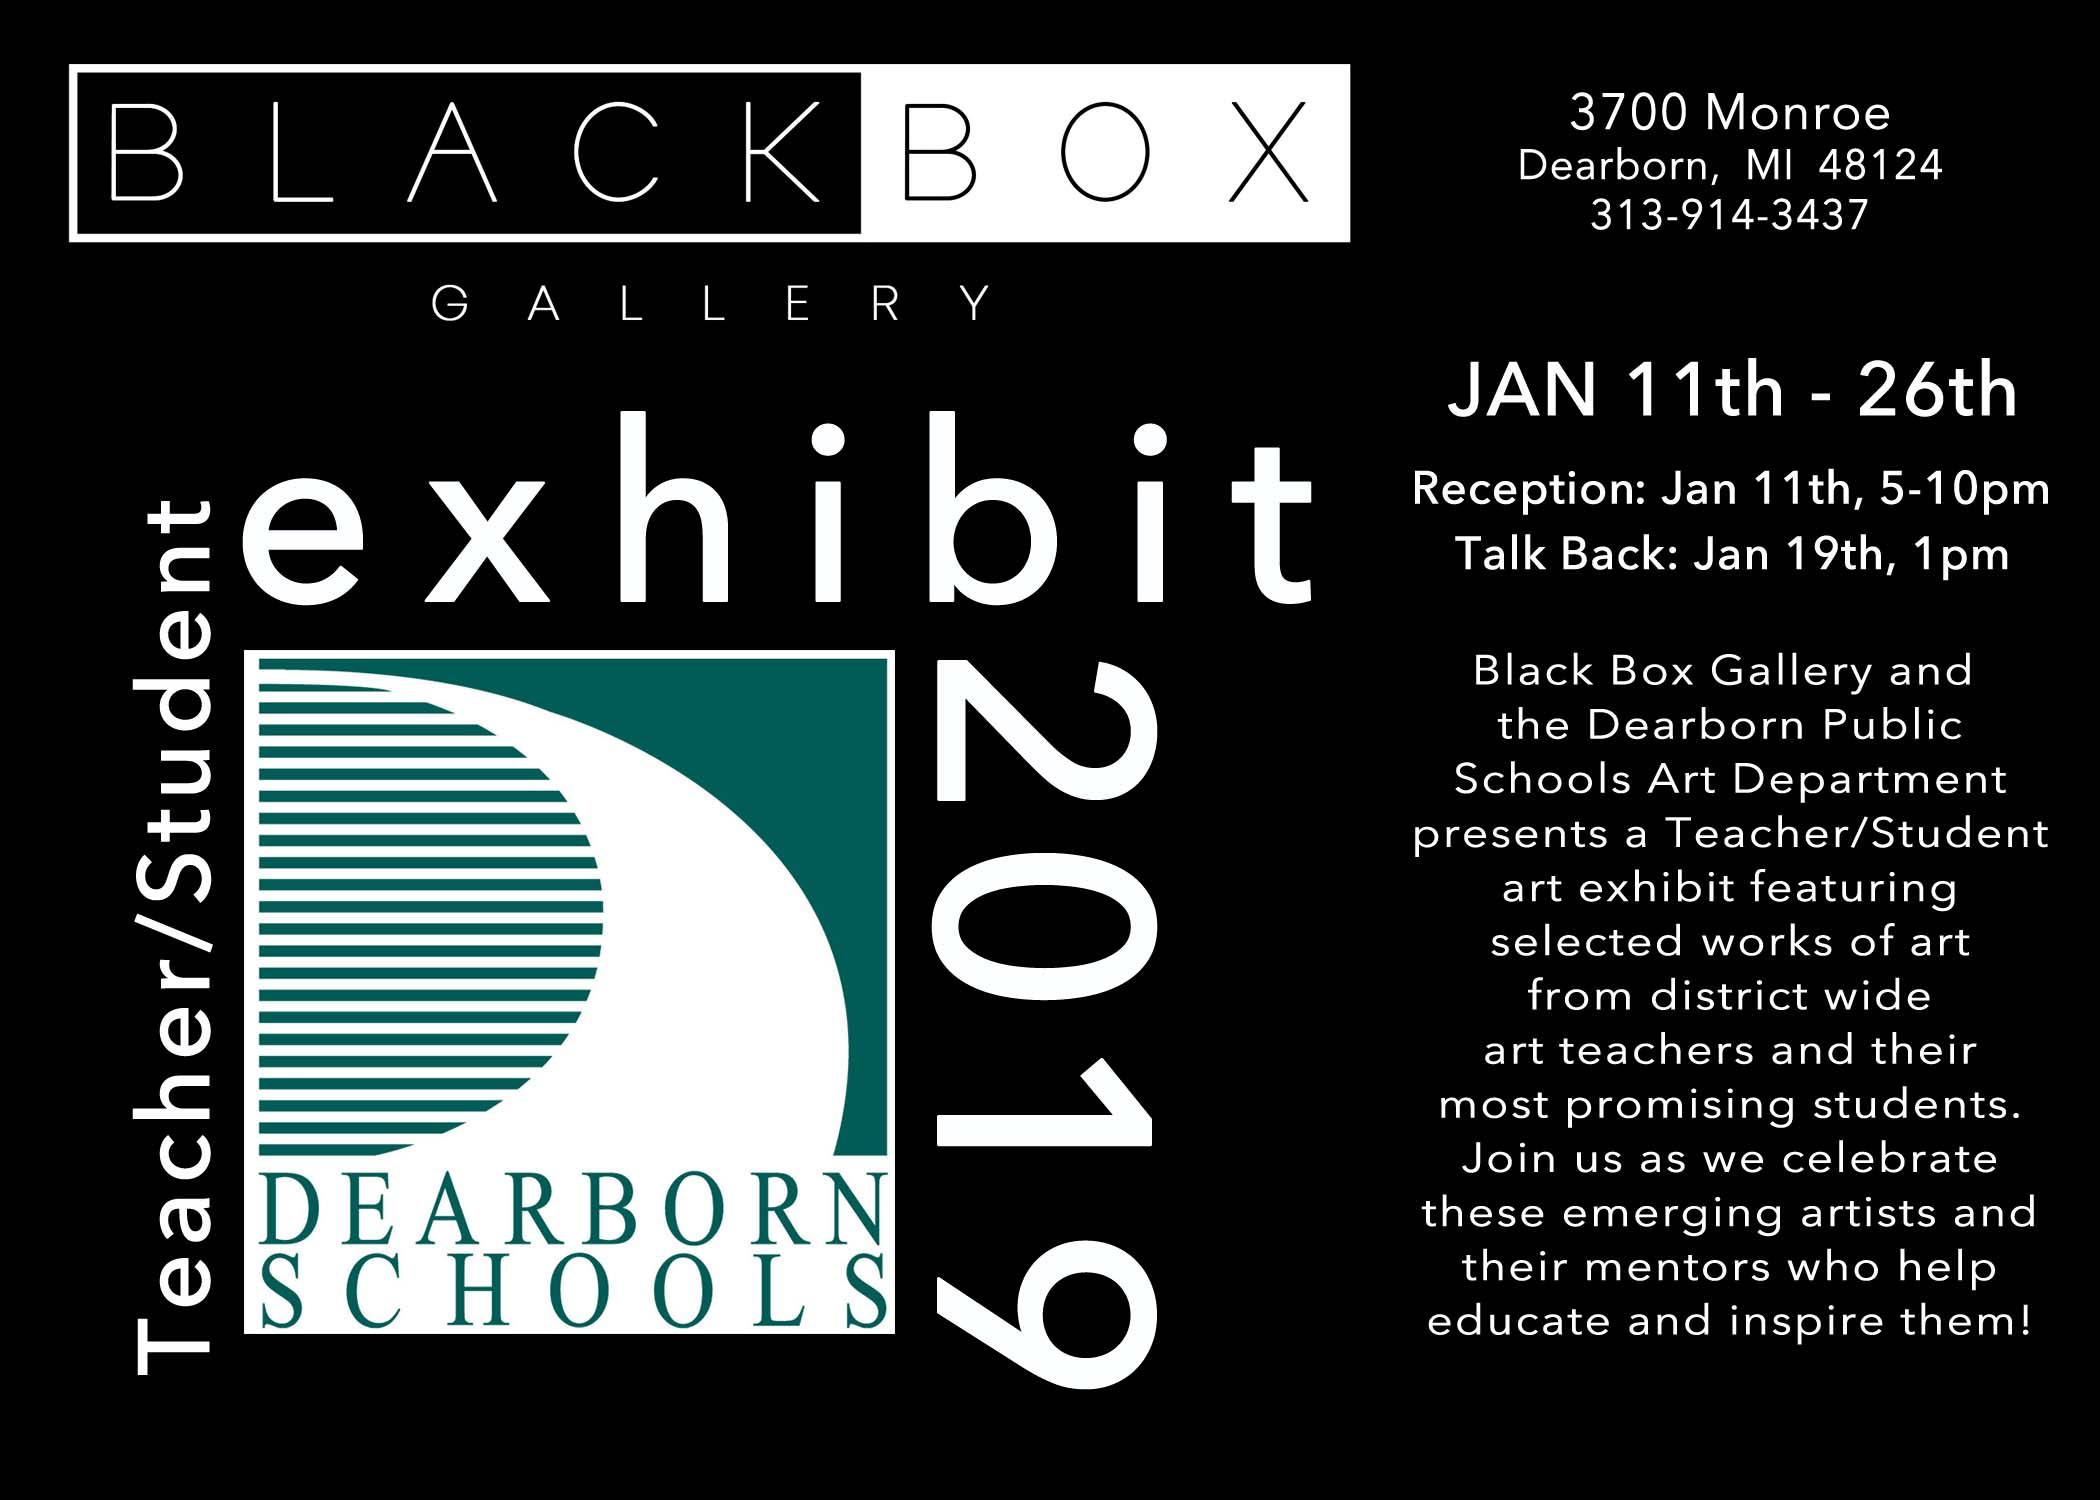 Black Box Gallery opening Friday 1/11/19! 5-10 pm!